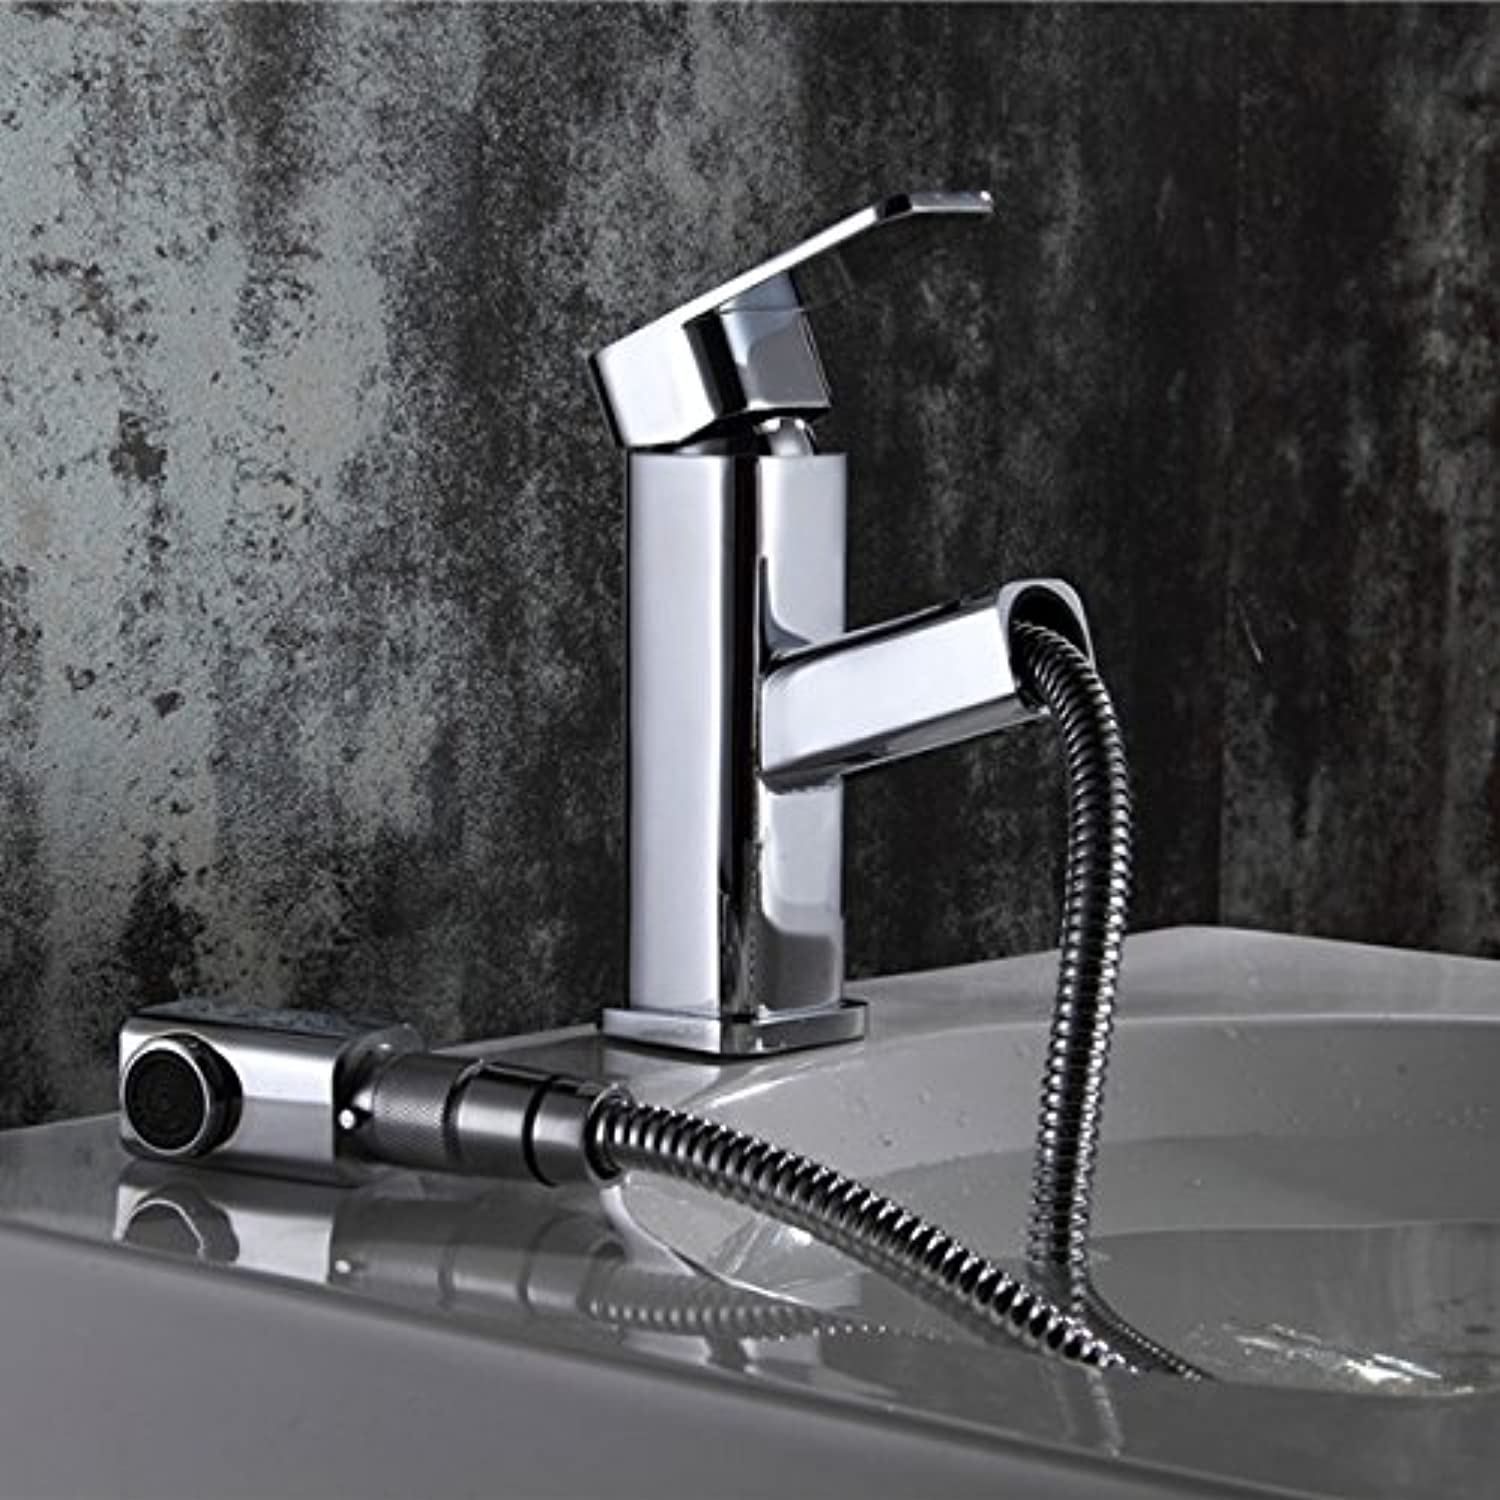 Maifeini ?Bathroom Accessories Kitchen Faucet Hot And Cold Copper Chrome-Plated Single Hole Pull Type Taps